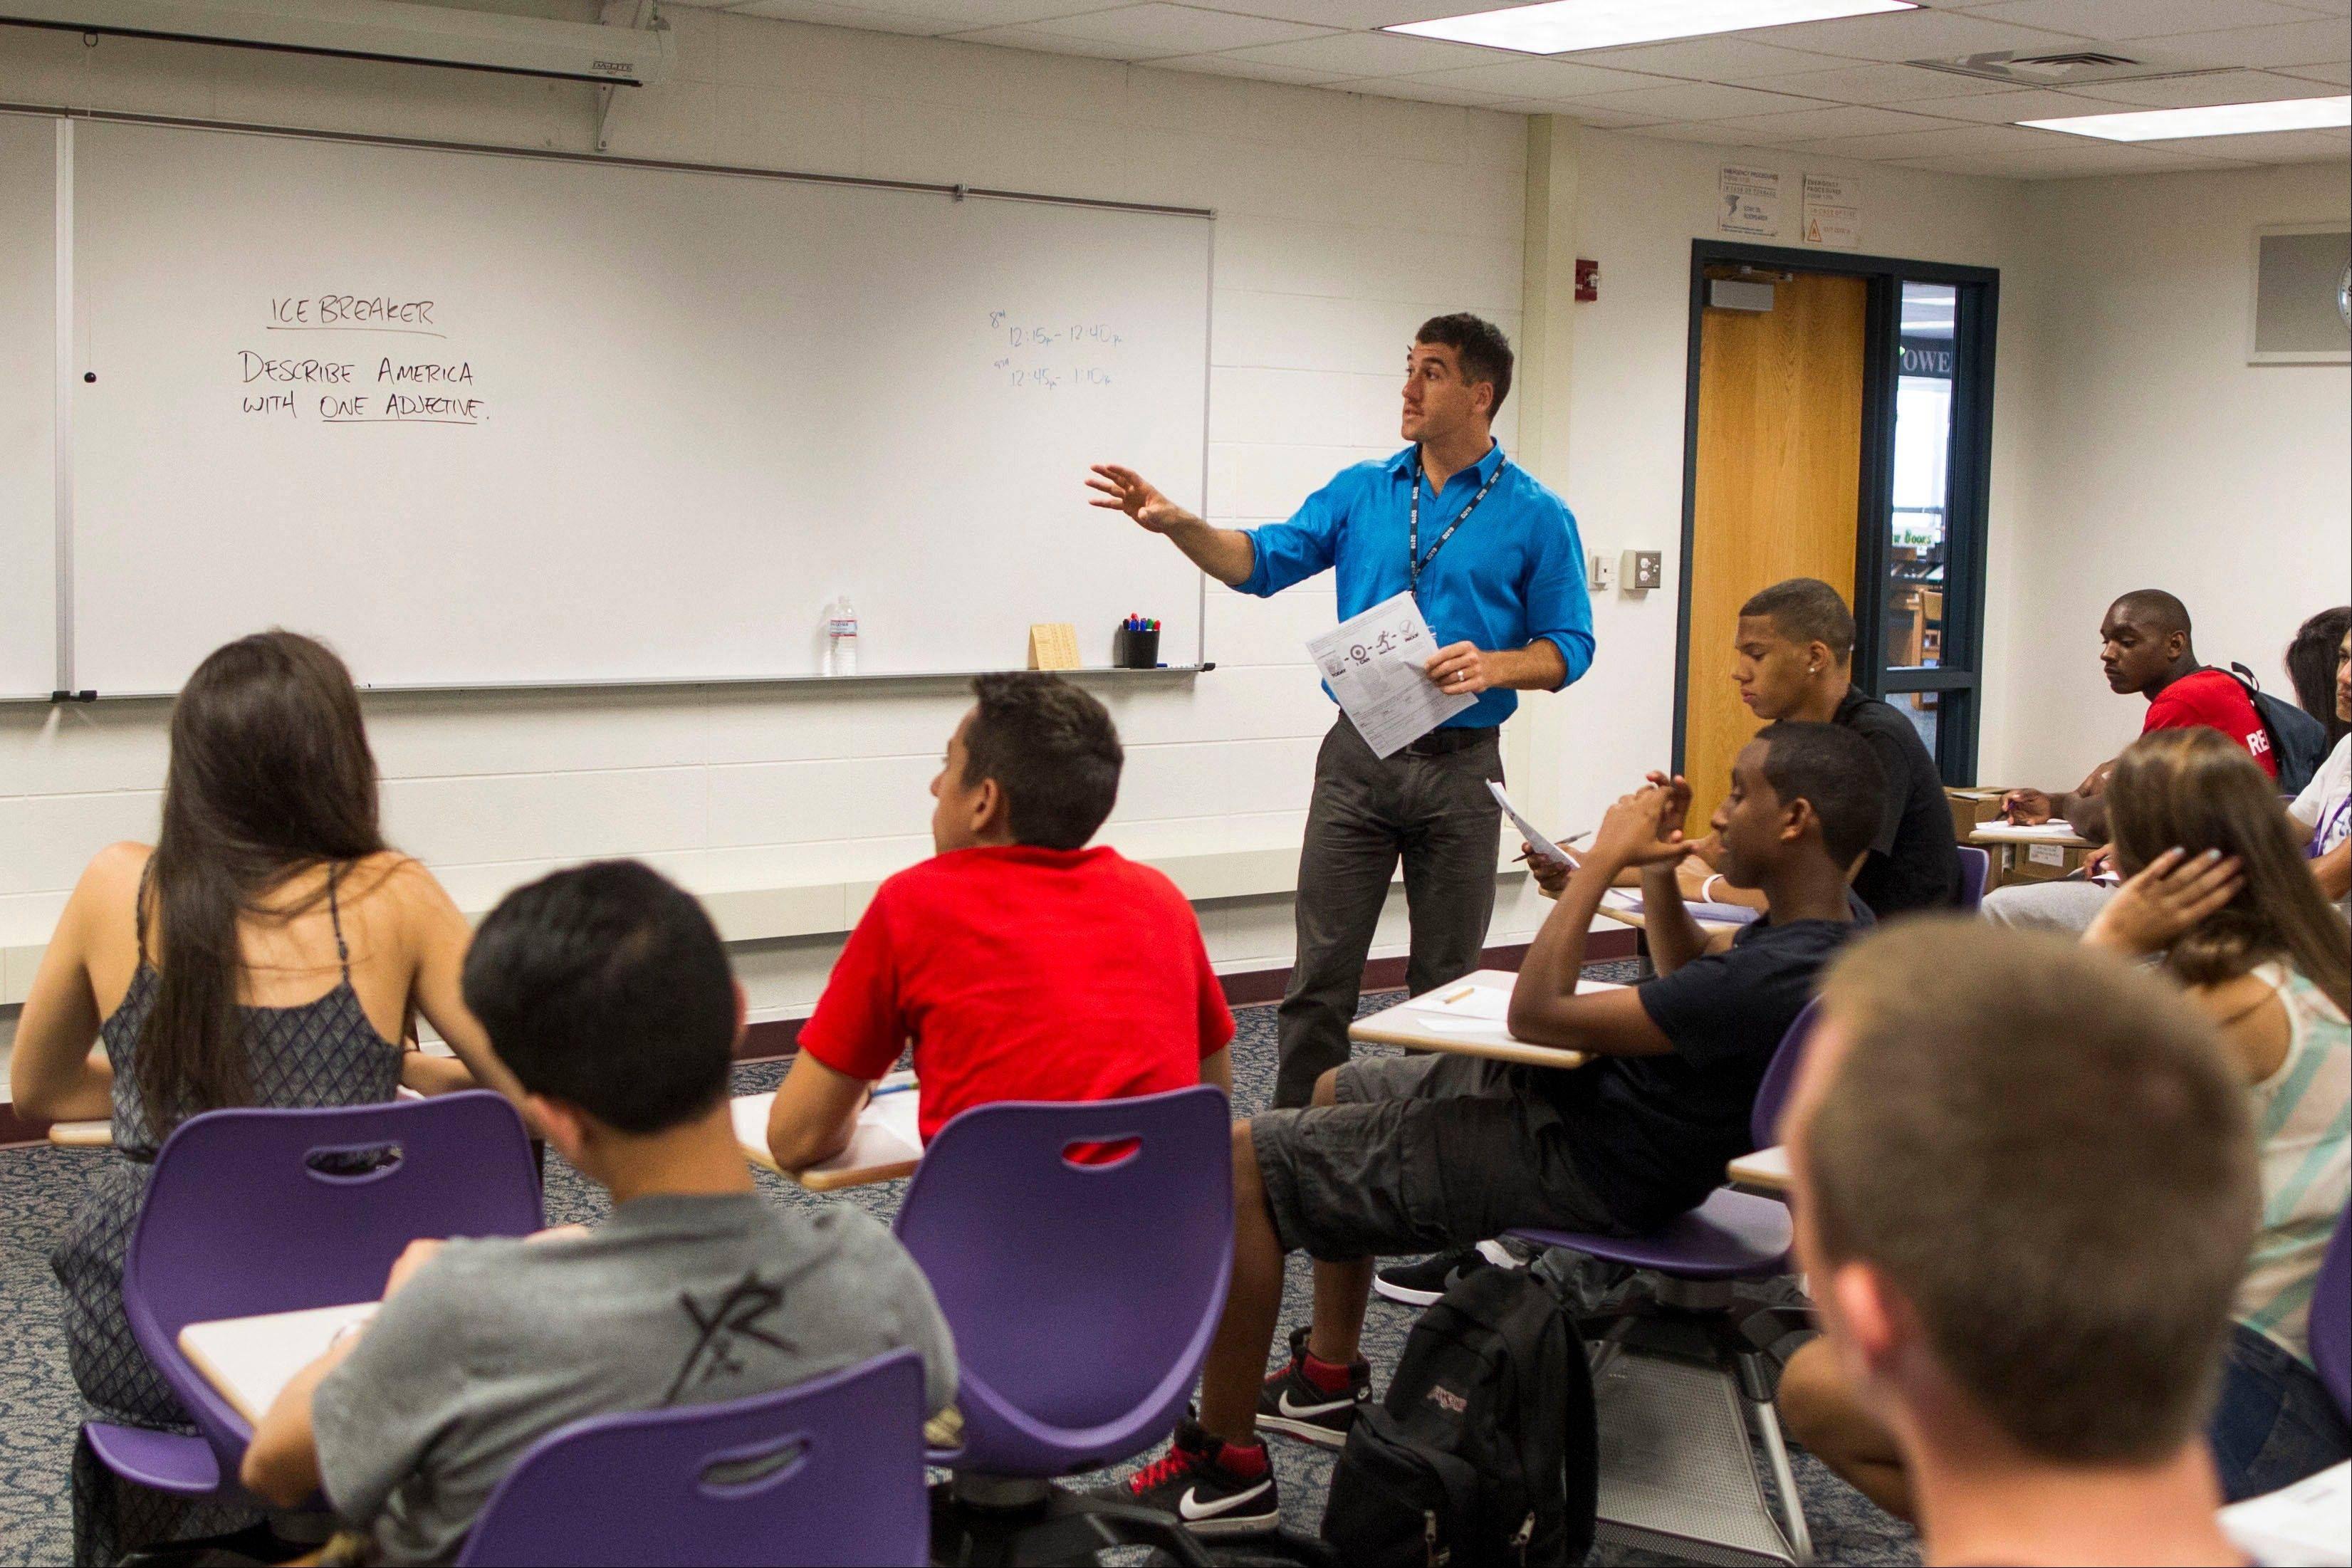 Ivan Silverberg teaches his American studies class Tuesday at Niles North High School in Skokie. This is the first school year that 34 Illinois districts beyond Chicago will begin grading teachers on whether their students� test scores are improving.